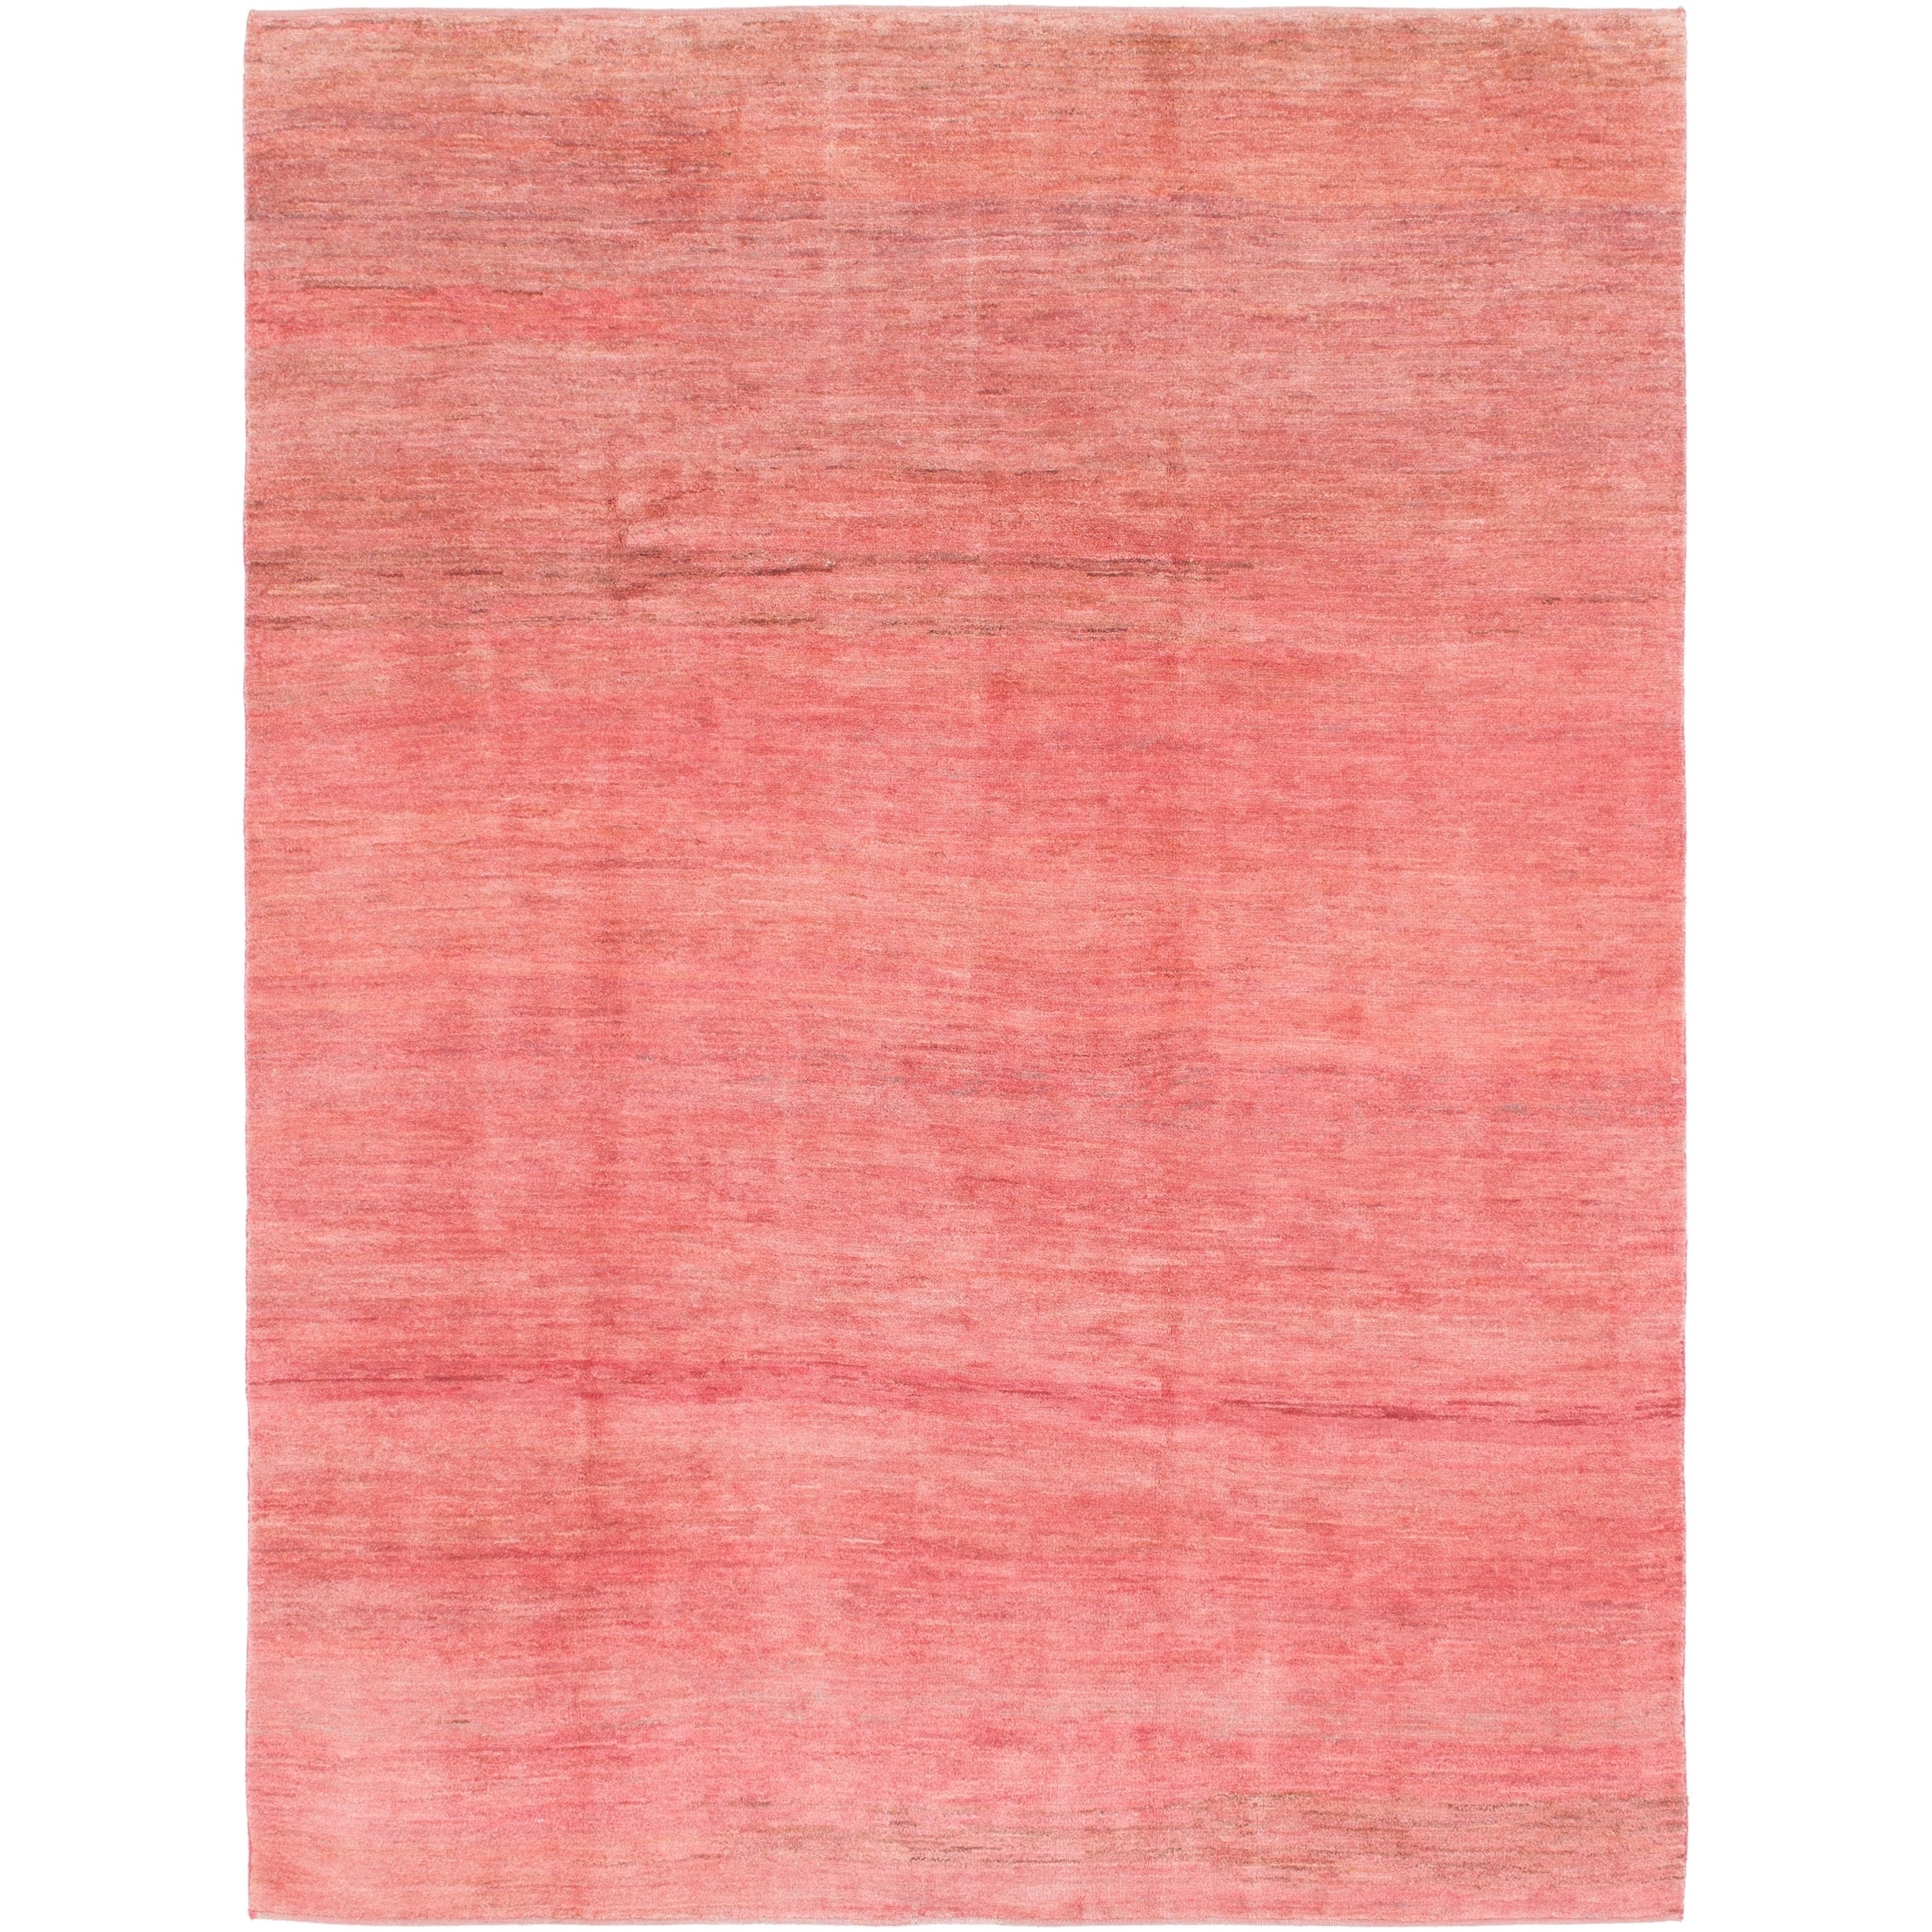 Hand Knotted Kashkuli Gabbeh Wool Area Rug - 6 7 x 8 10 (Rust Red - 6 7 x 8 10)